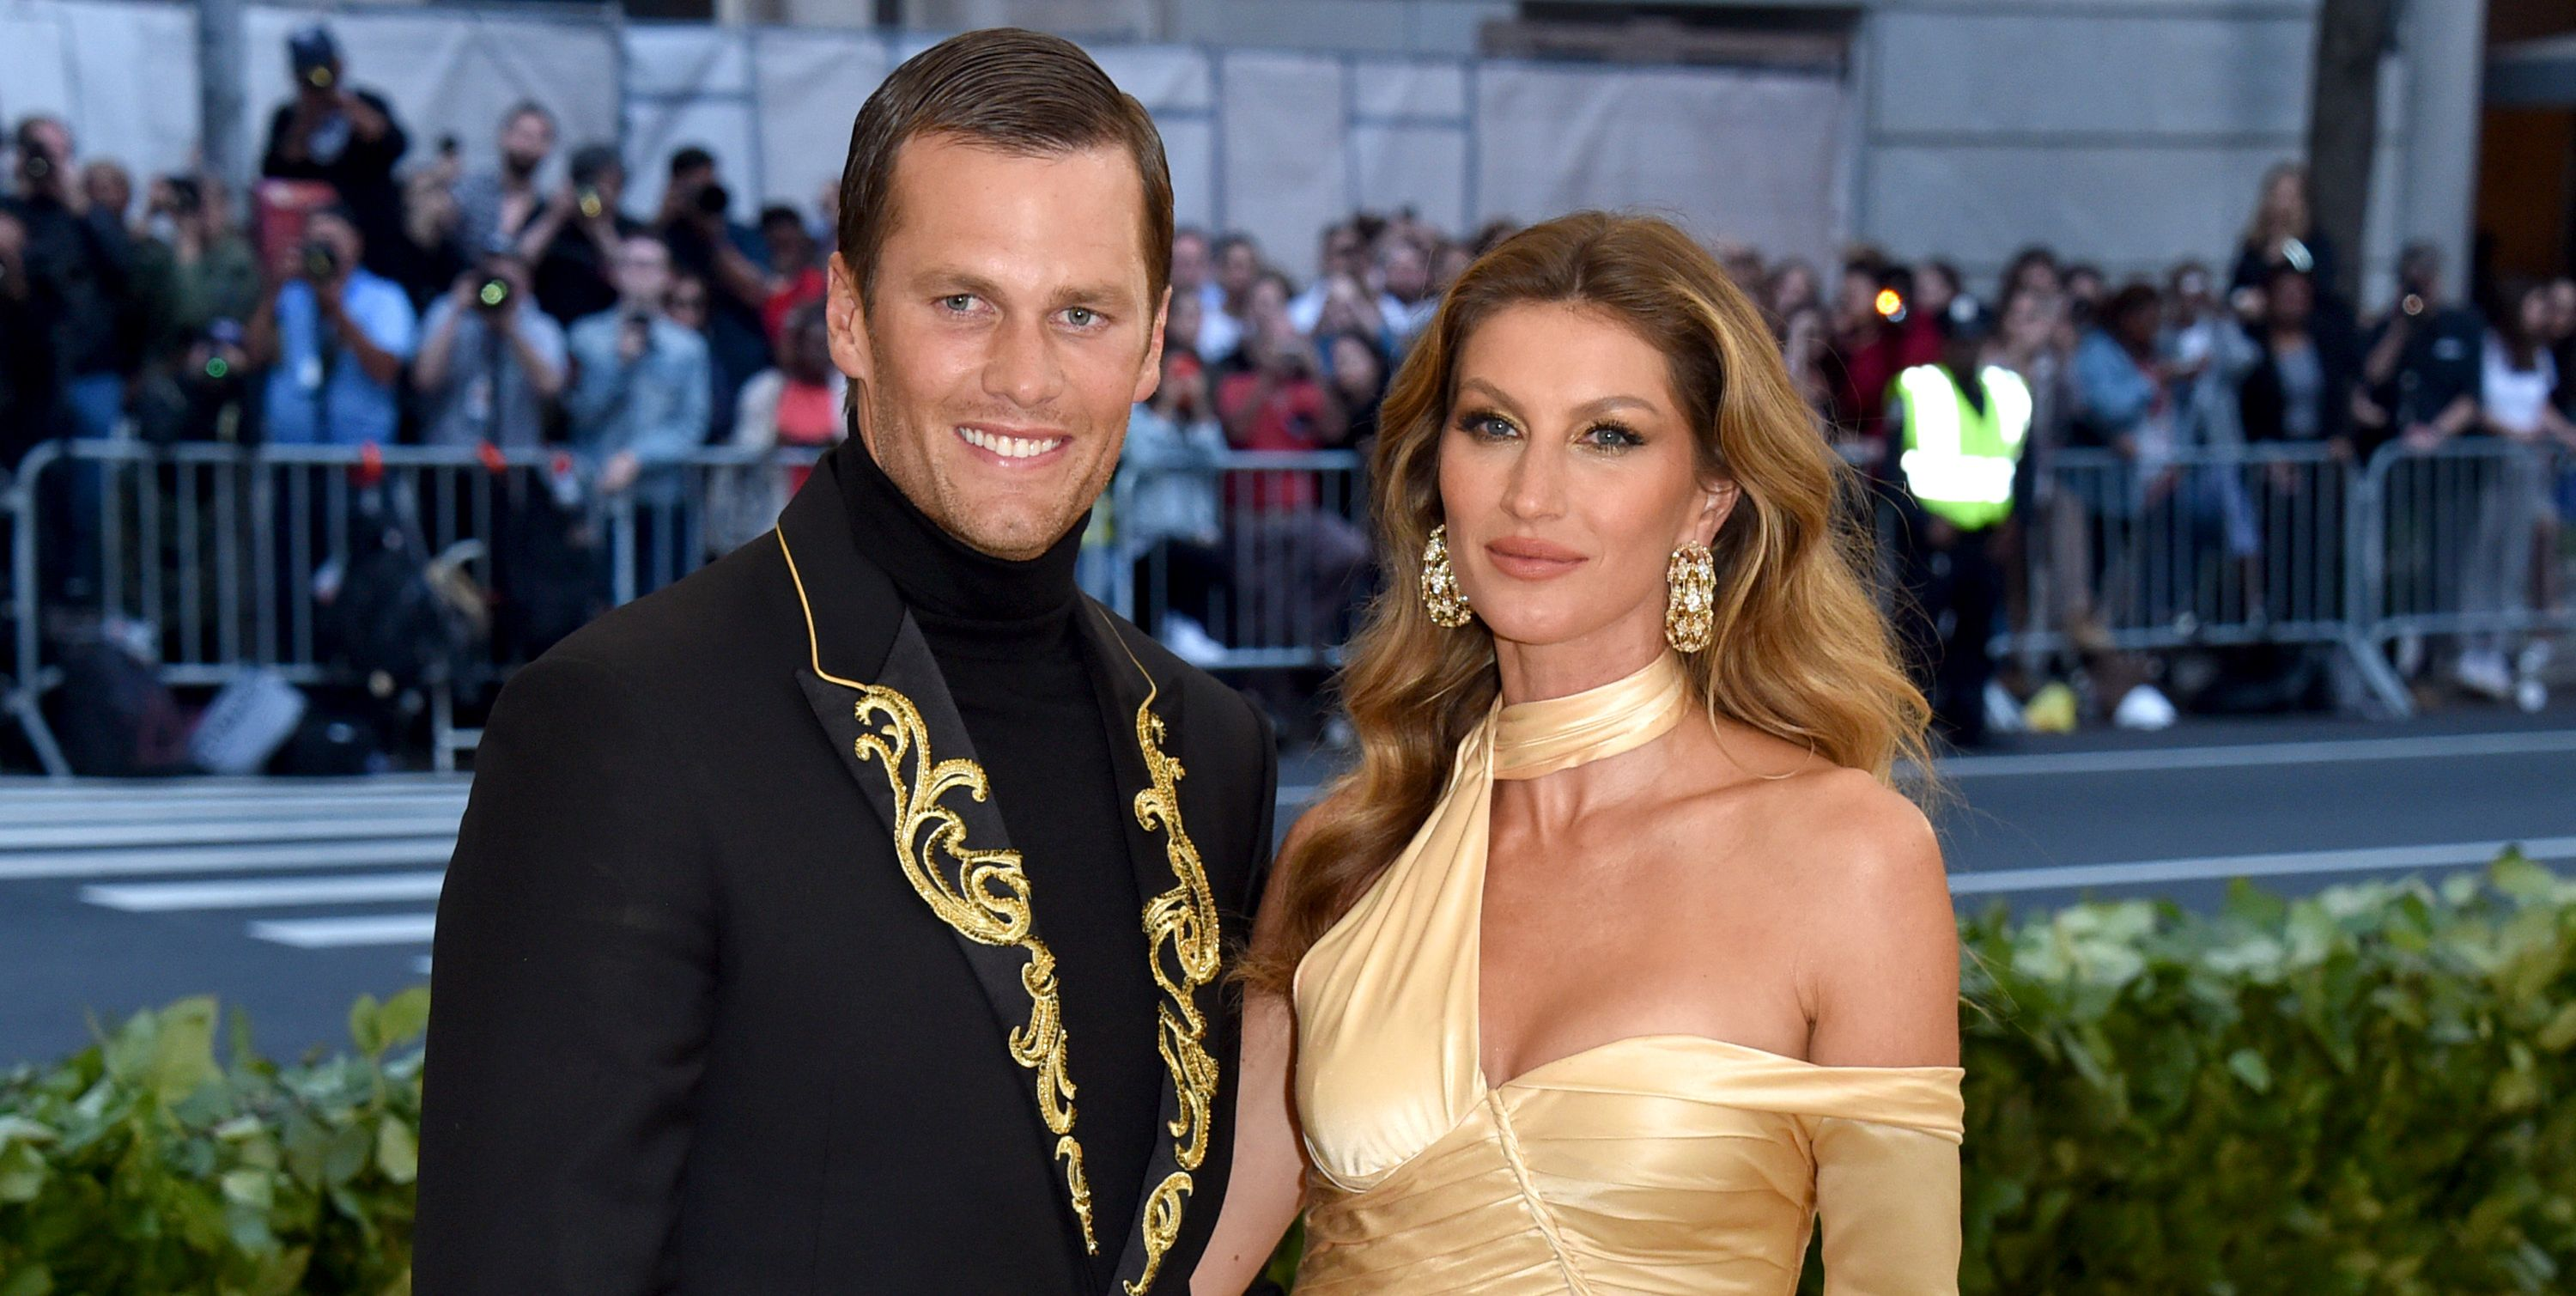 Tom Brady Gisele Bundchen Love Story